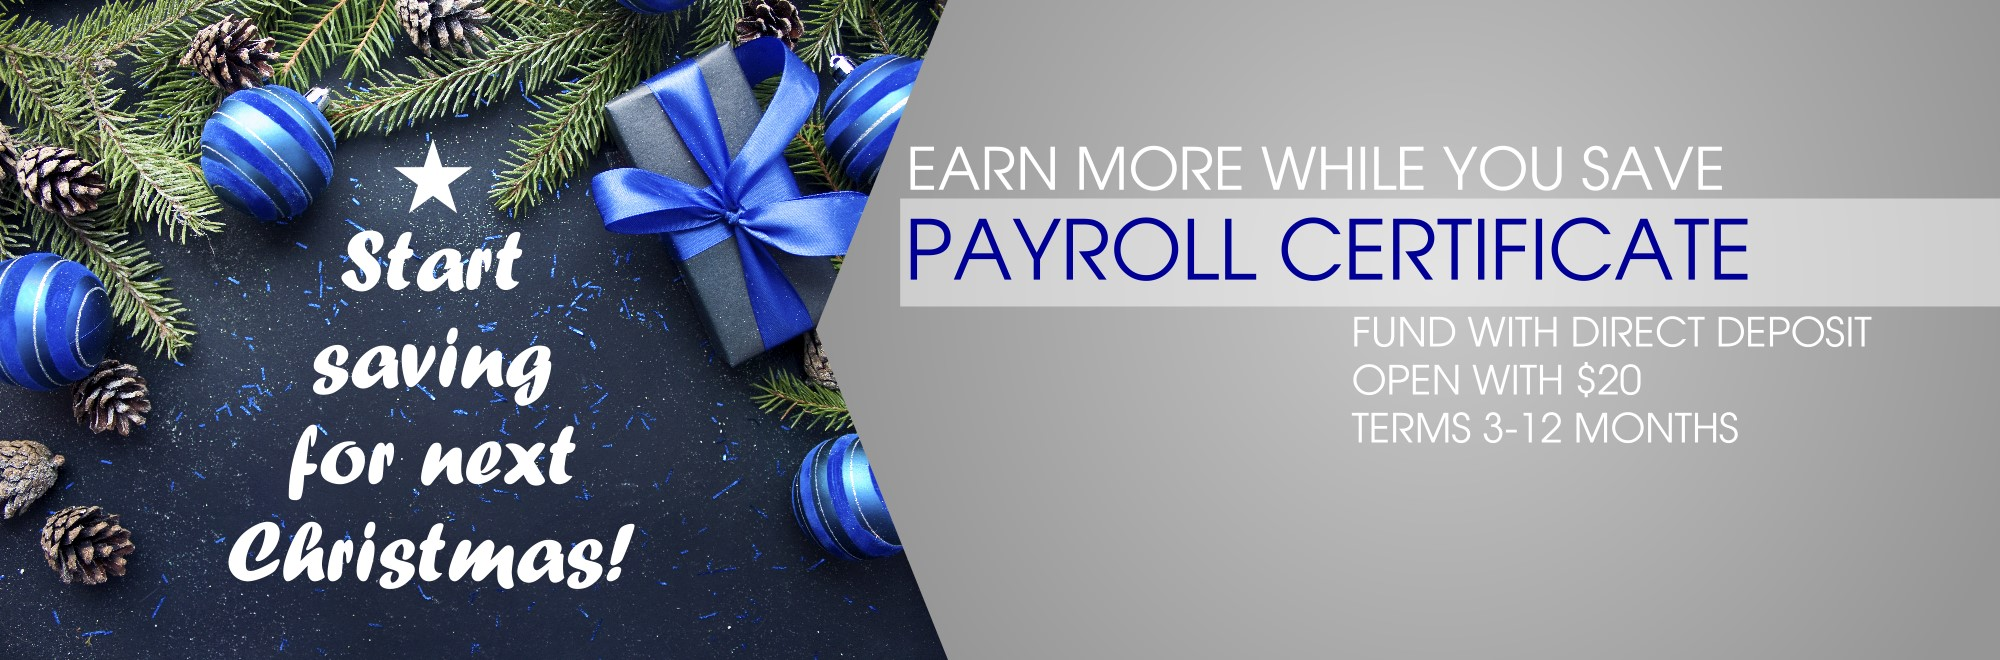 Start saving for next christmas with a Payroll Certificate.  $20 to open. fund with direct deposit. Terms 3-12 months